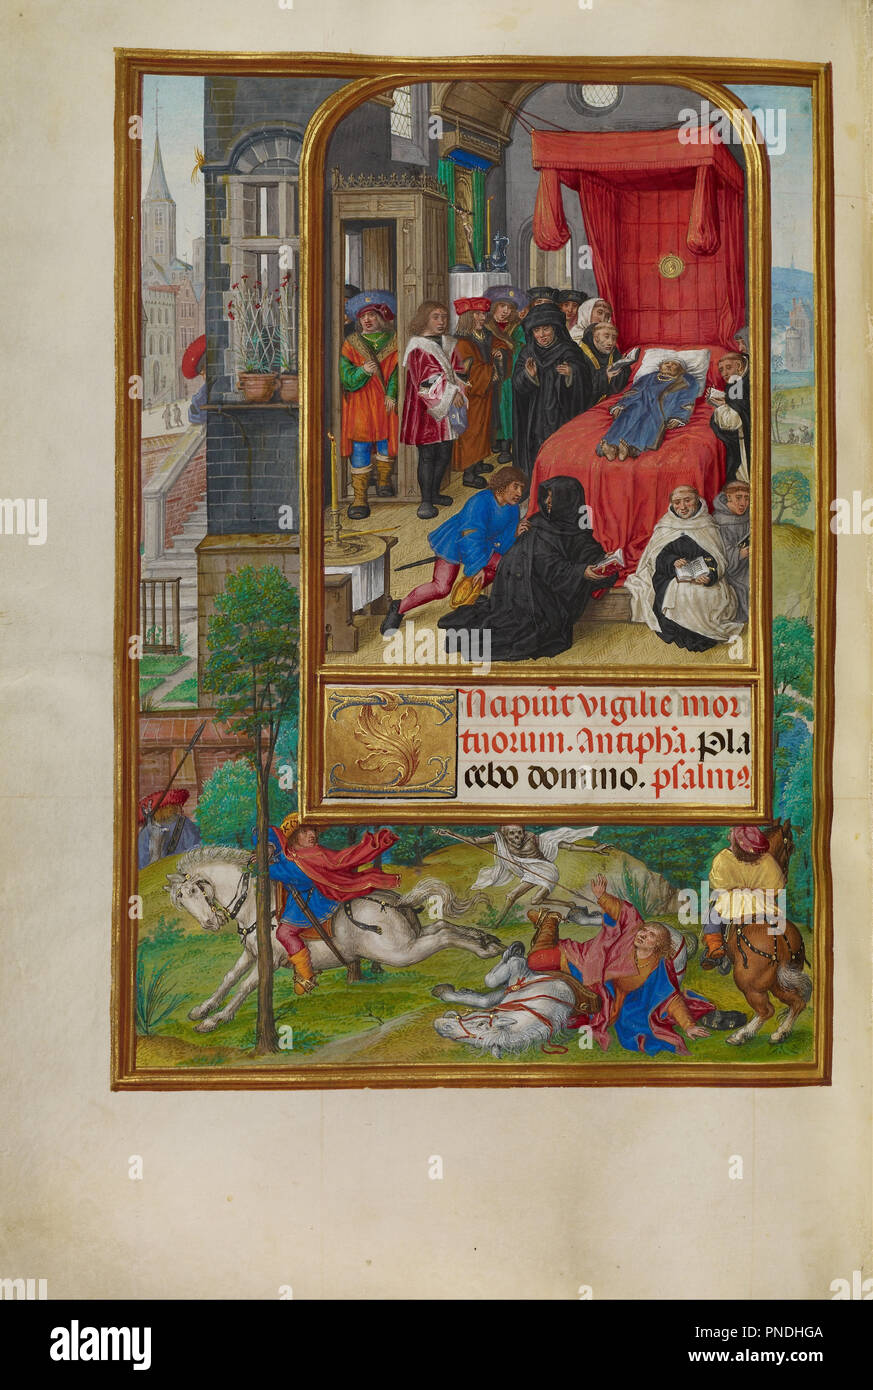 Deathbed Scene. Date/Period: Ca. 1510 - 1520. Folio. Tempera colors, gold, and ink on parchment. Height: 232 mm (9.13 in); Width: 167 mm (6.57 in). Author: Master of James IV of Scotland. - Stock Image